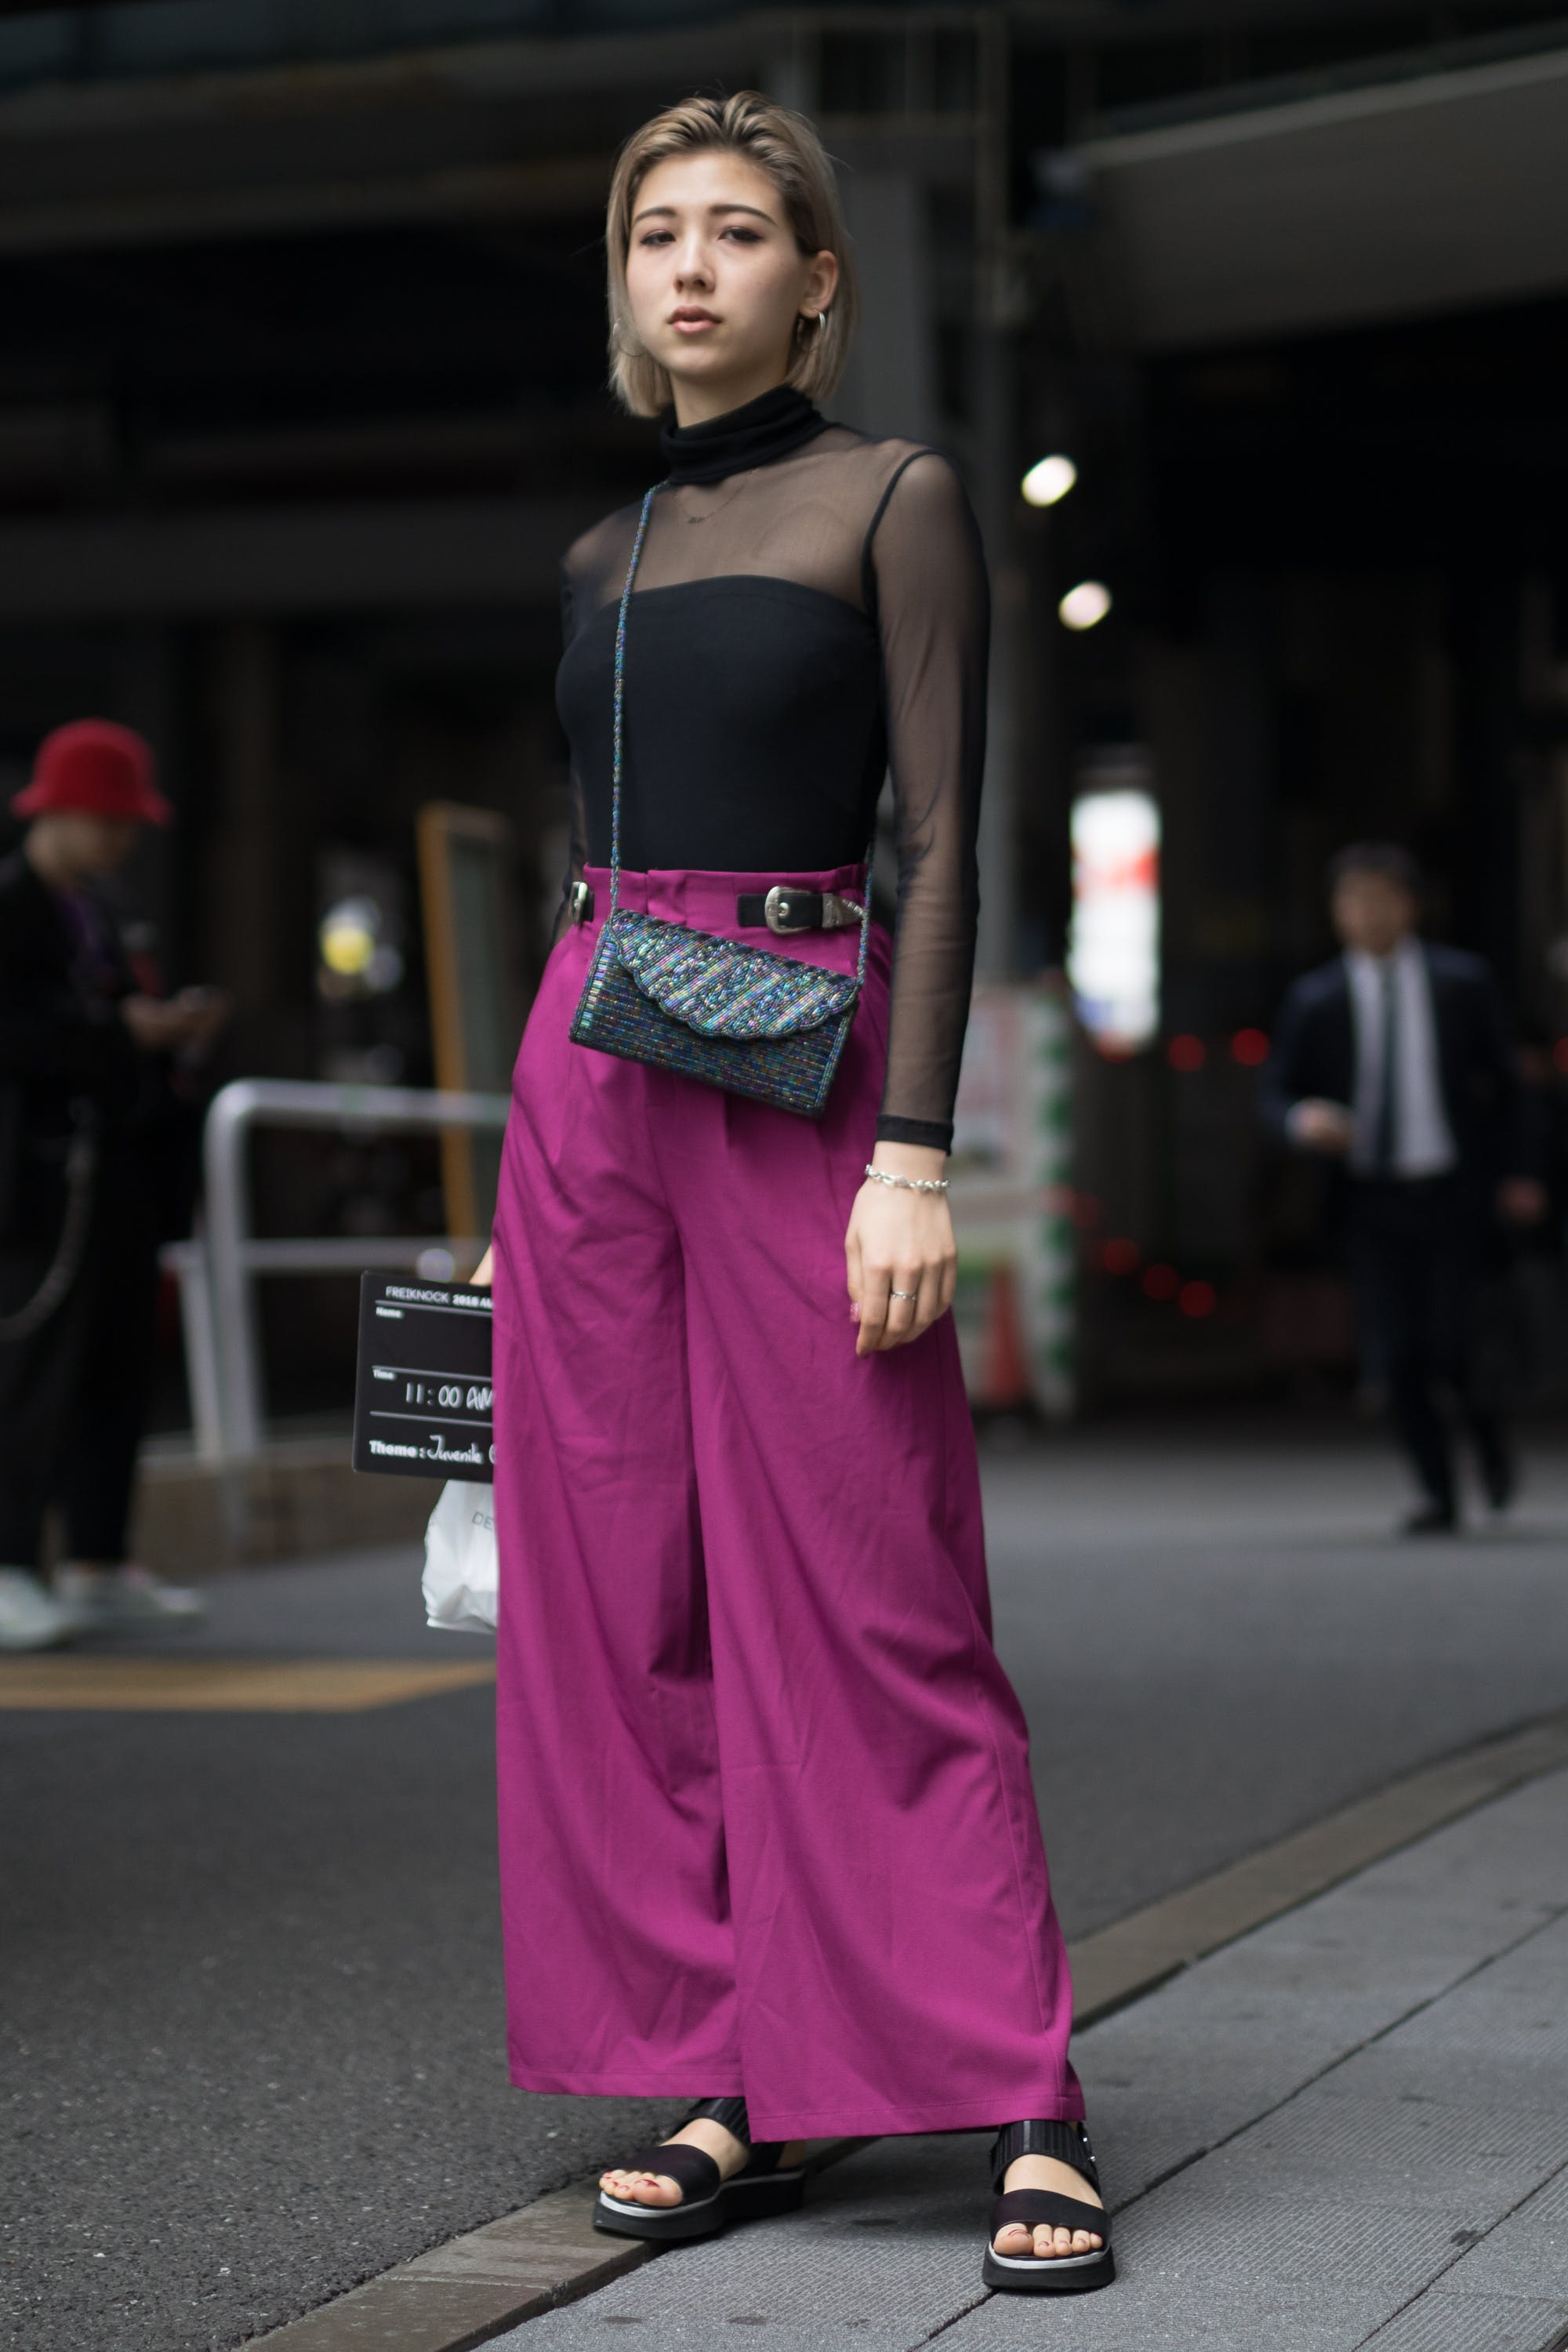 woman wearing black sweater and purple pants